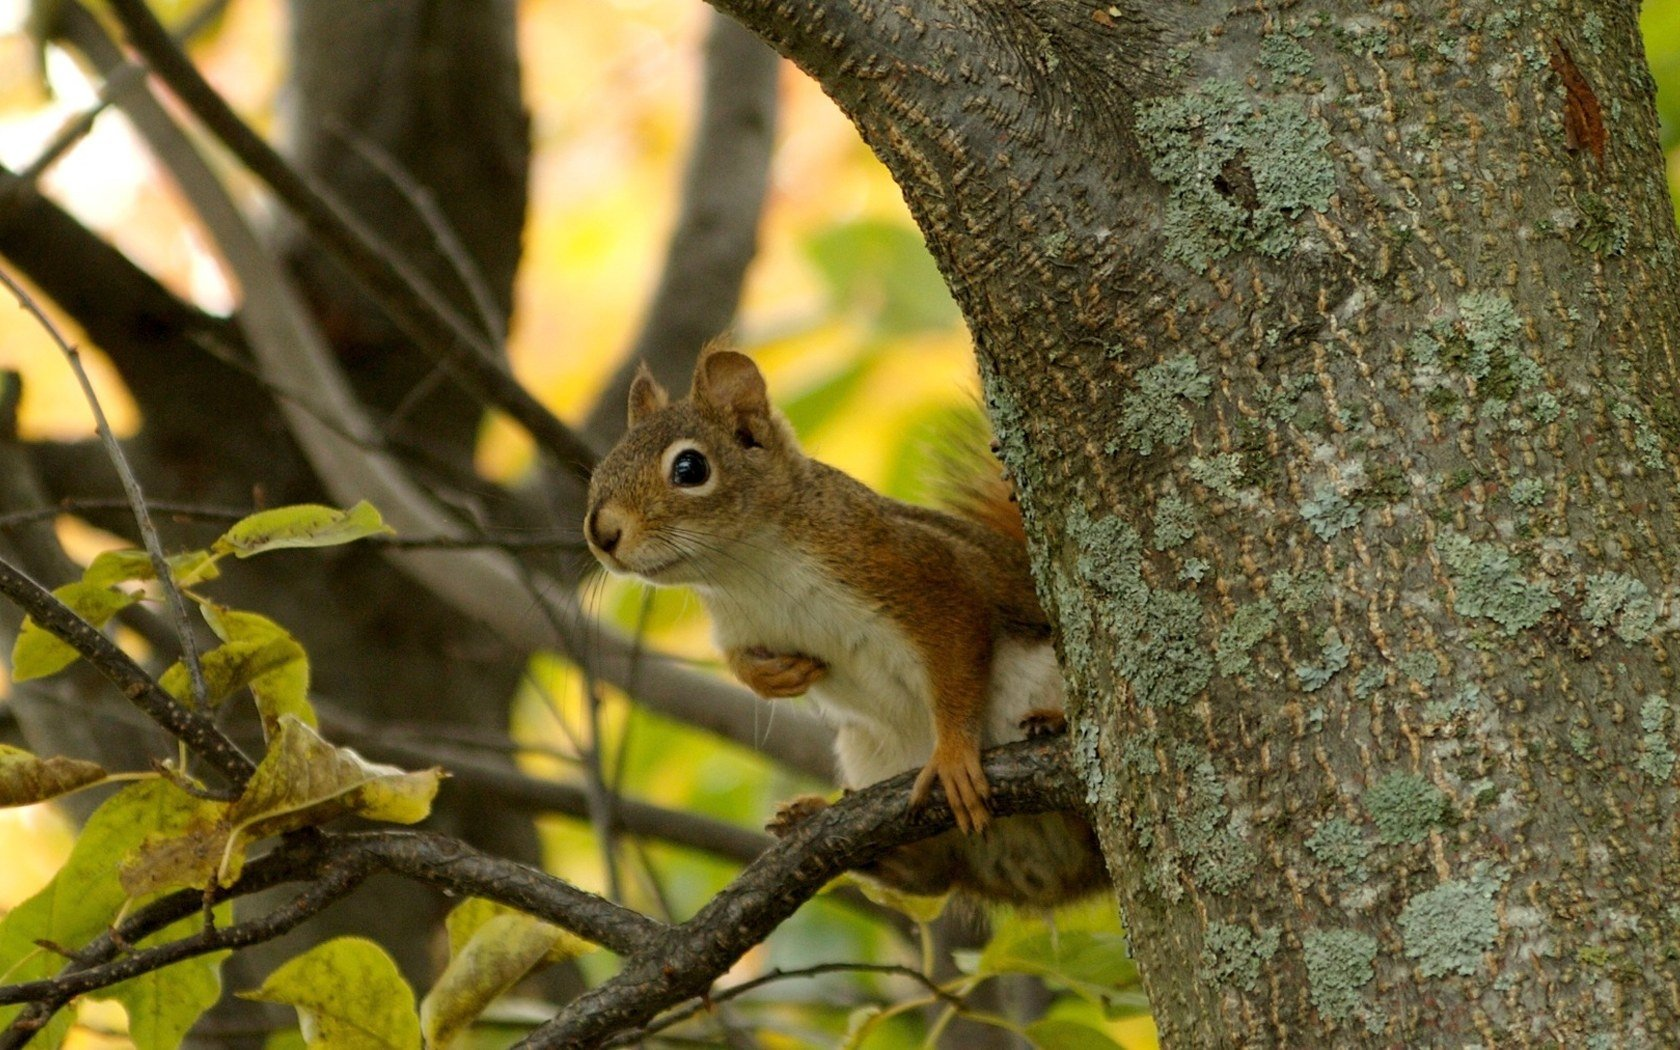 Download hd 1680x1050 Squirrel PC background ID:312069 for free